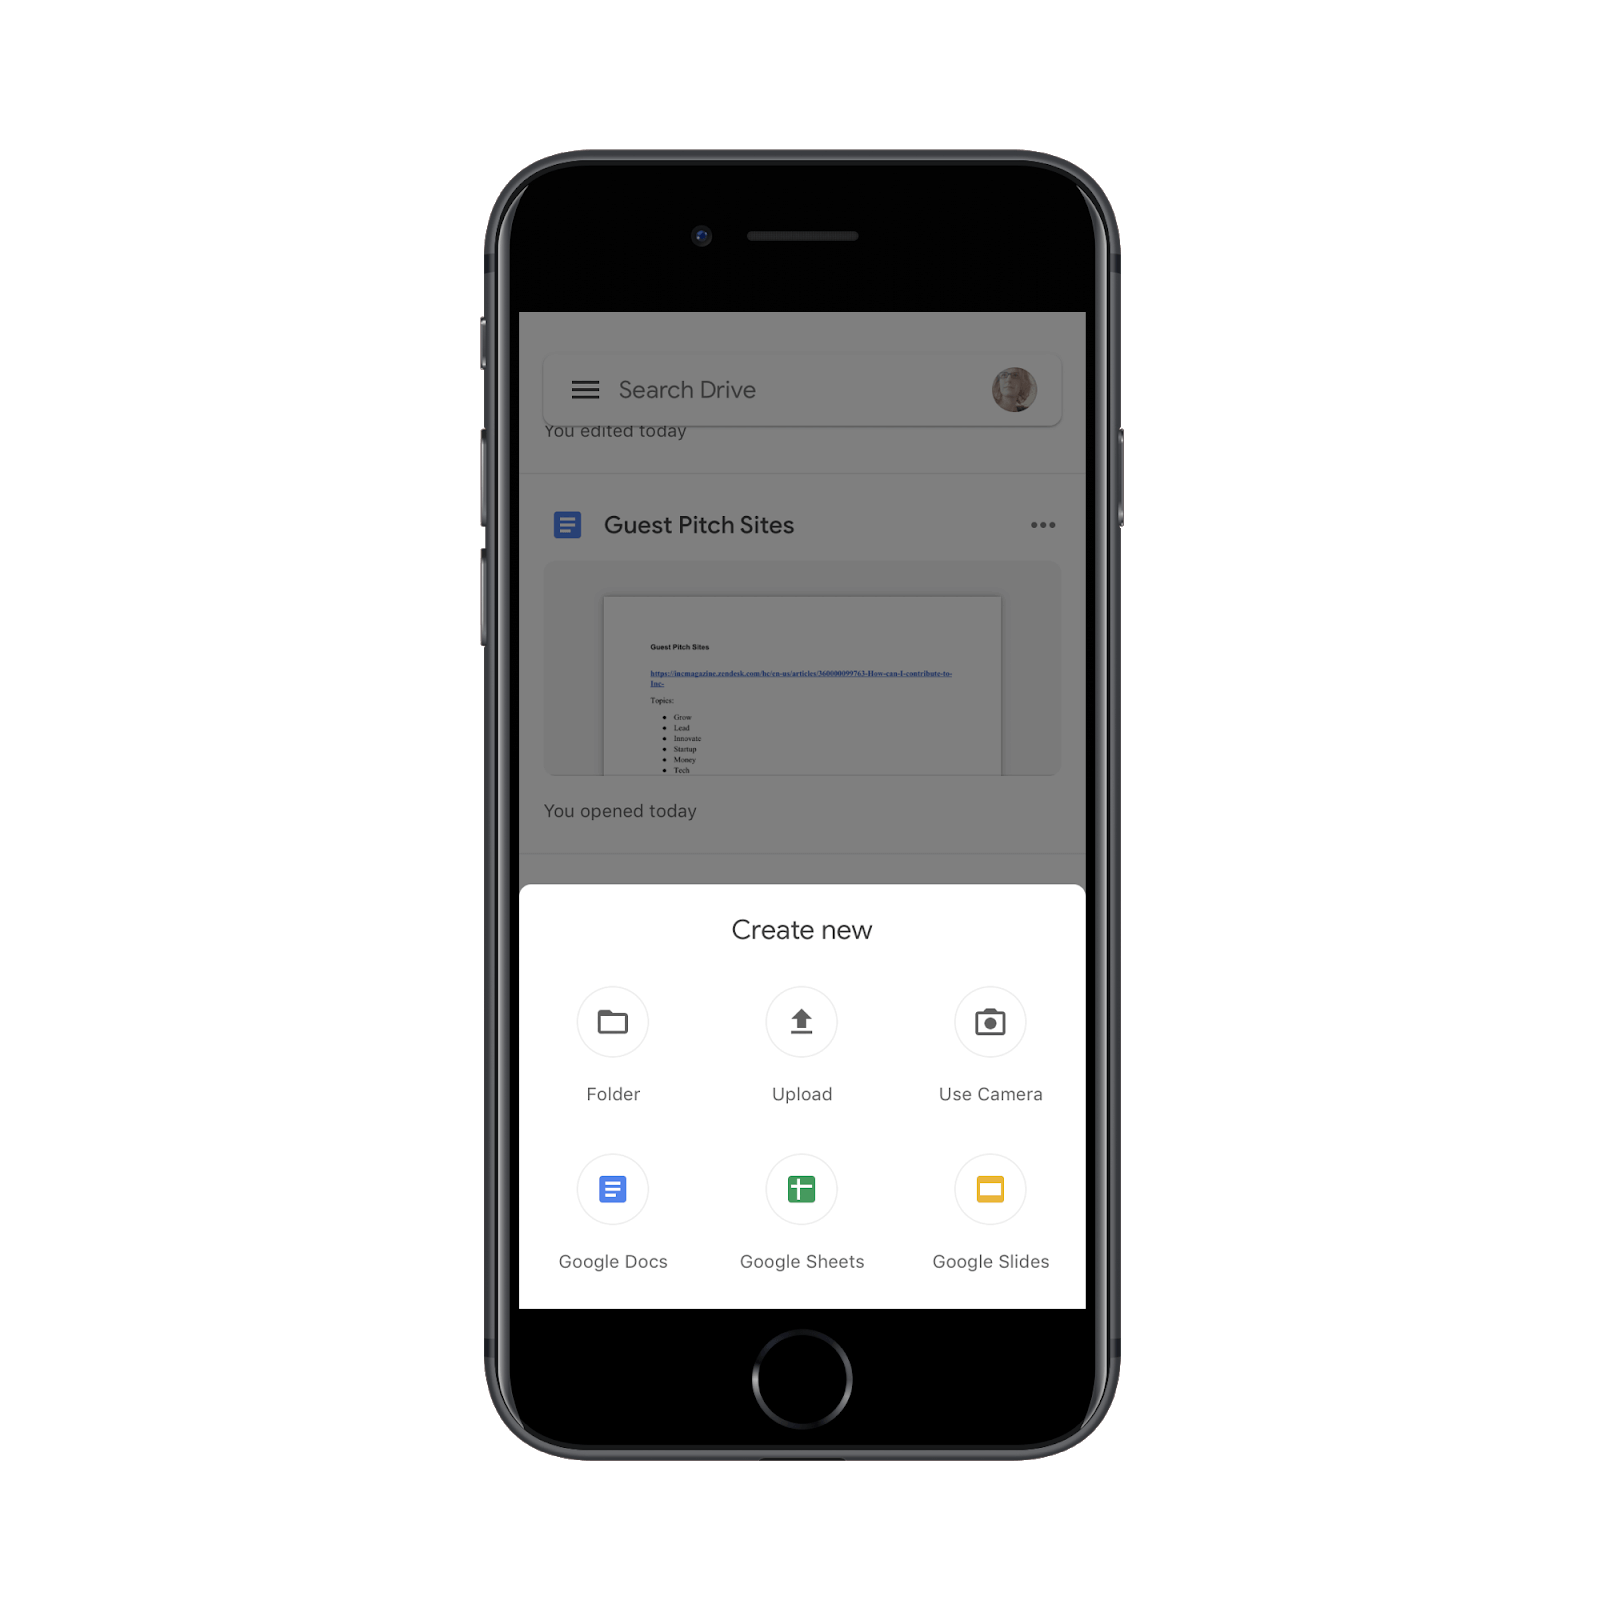 adding new files in google drive app